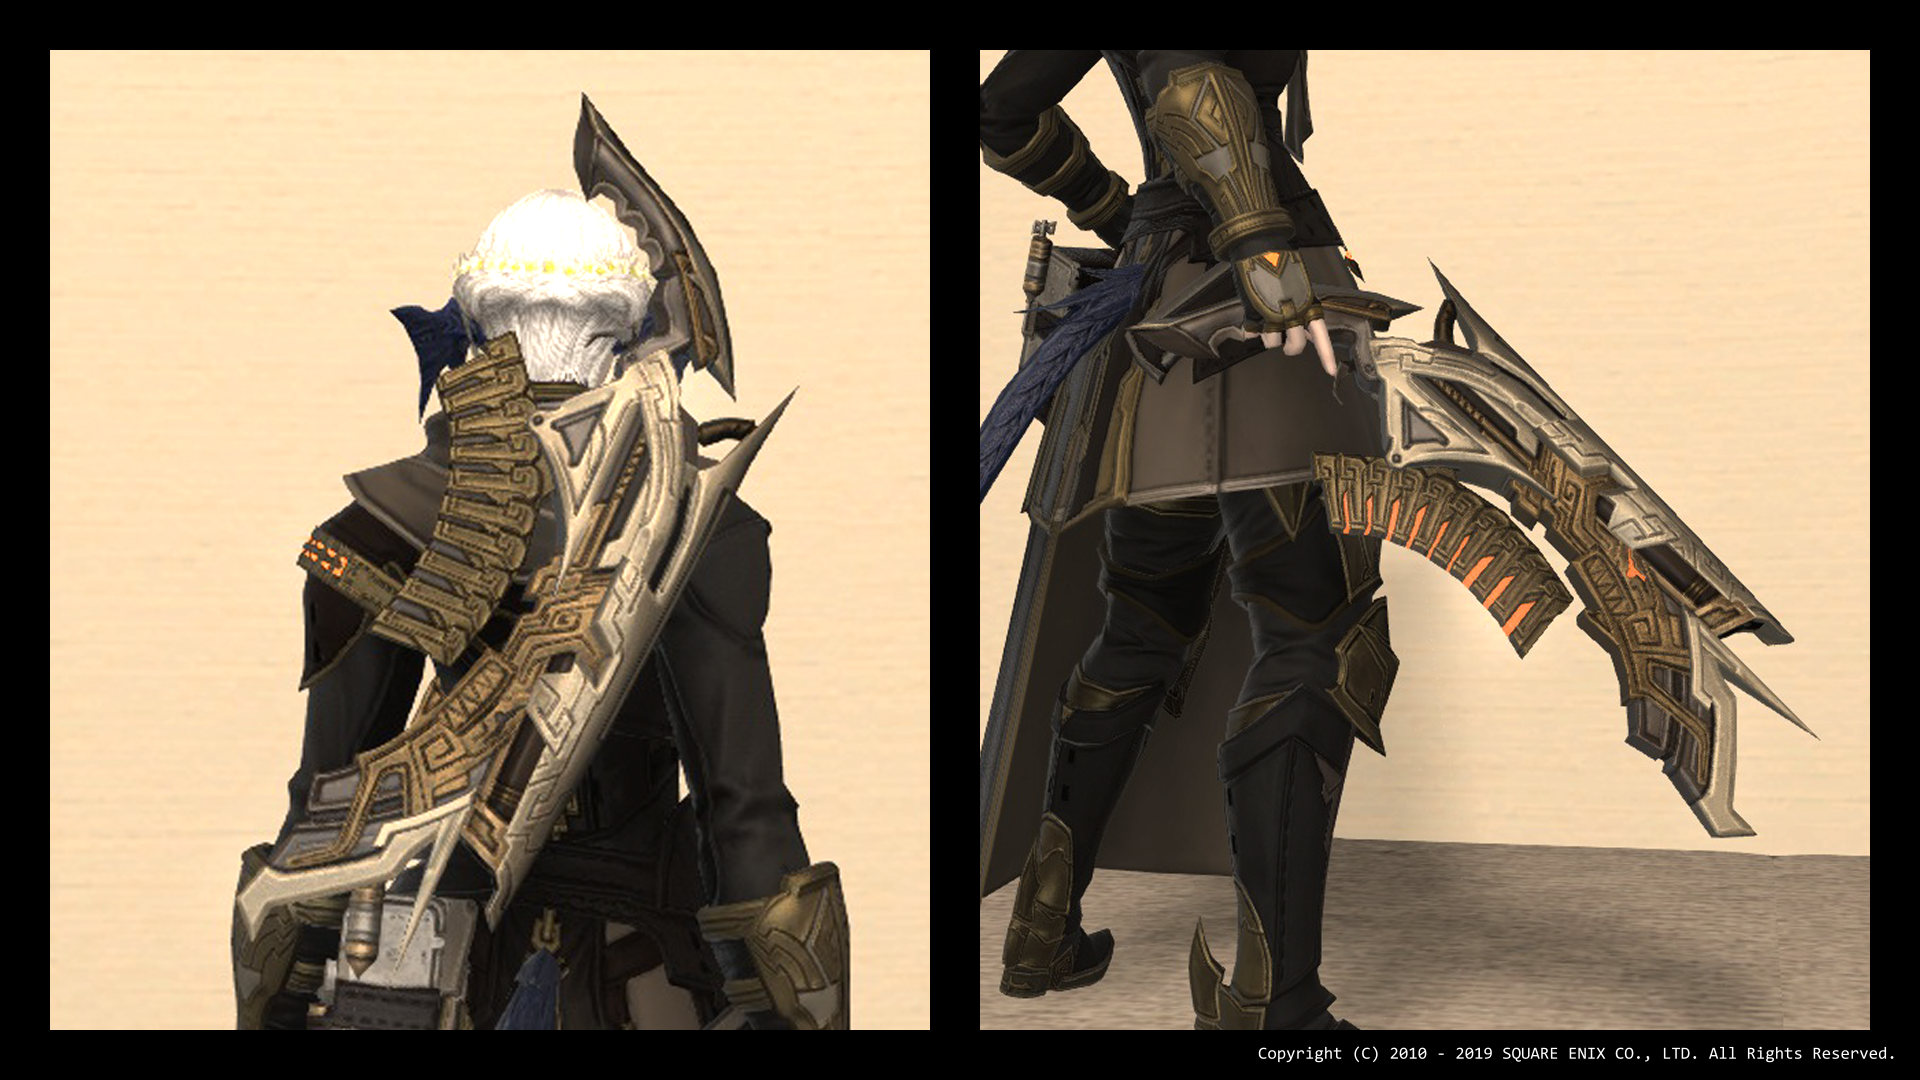 440-mch-arms